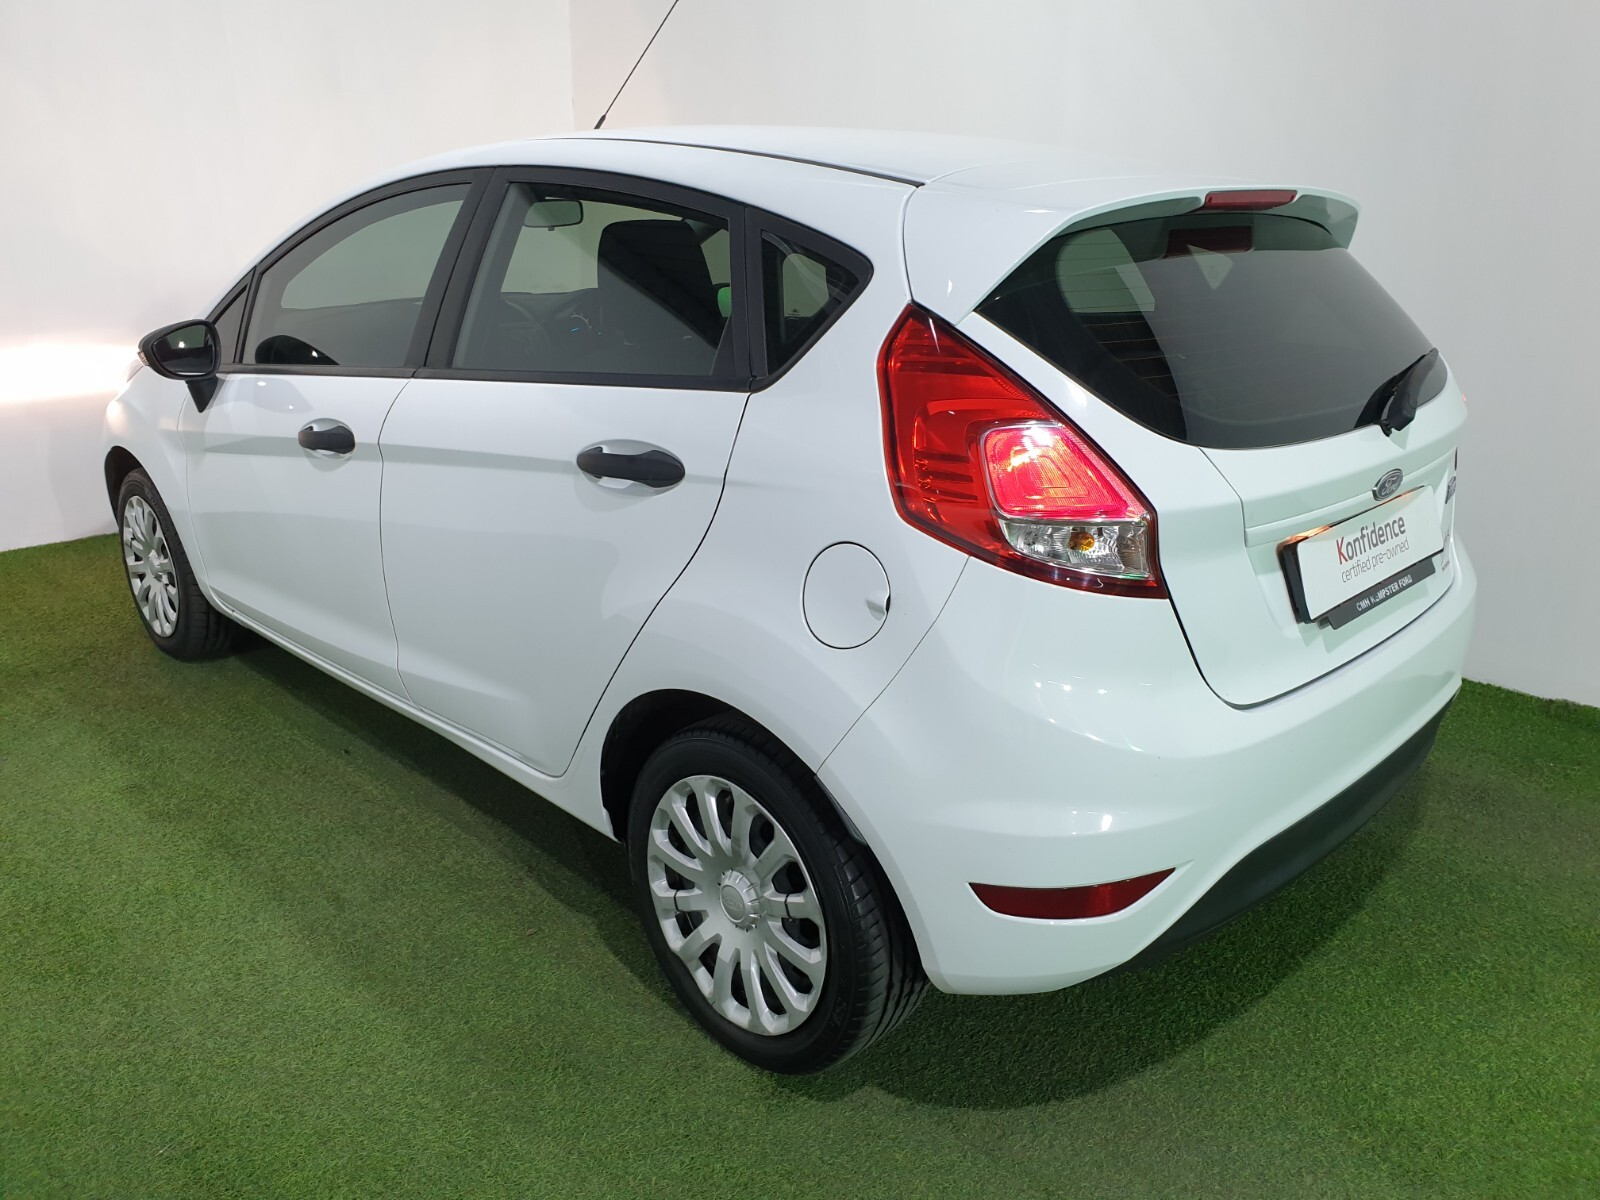 FORD 1.4 AMBIENTE 5 Dr Johannesburg 4327079